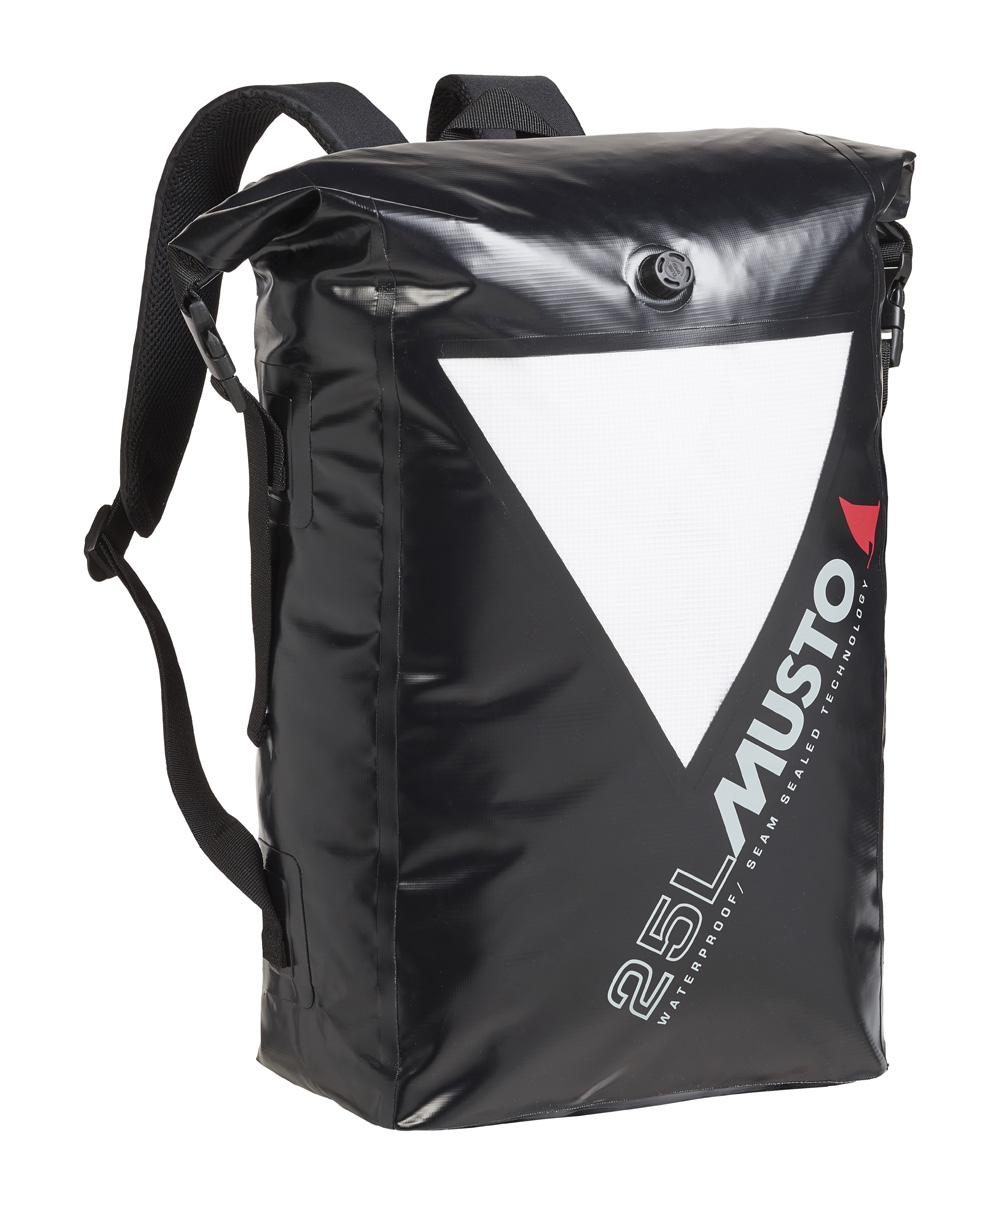 MUSTO WP DRY BACKPACK 25L (AL4770)